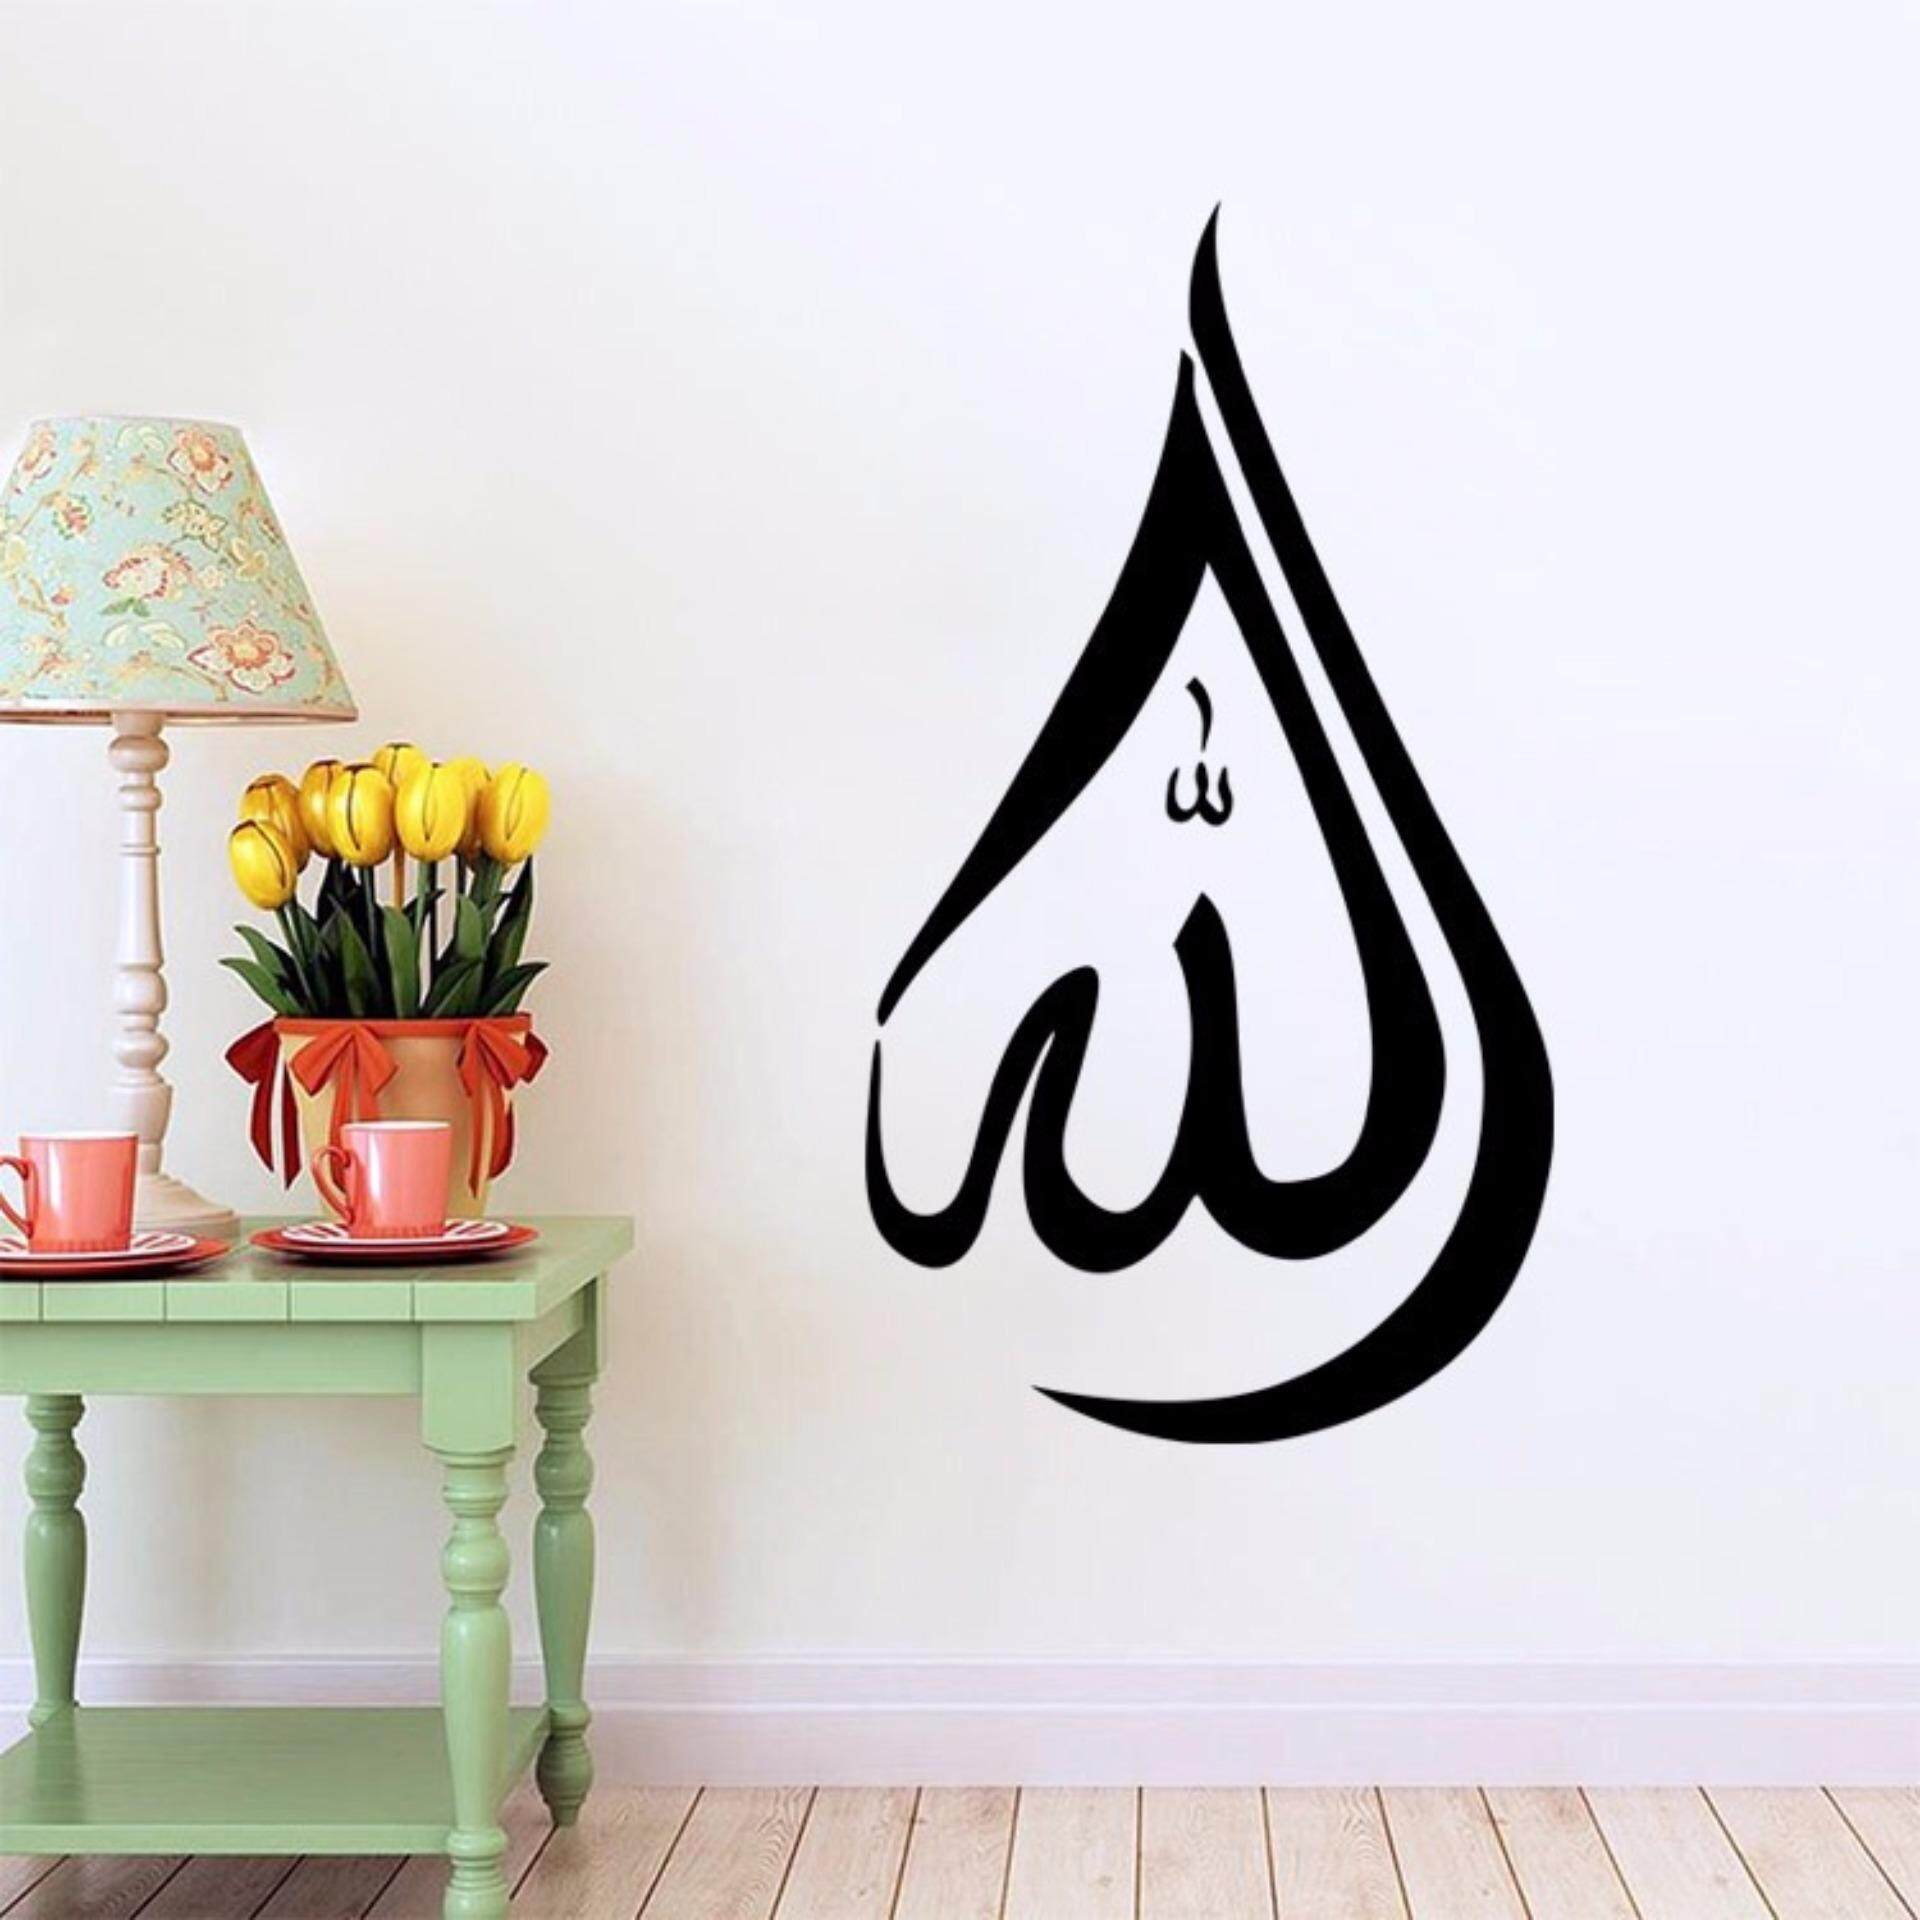 Islamic Muslim Art Calligraphy Wall Stickers Quote Decals Removable Vinyl